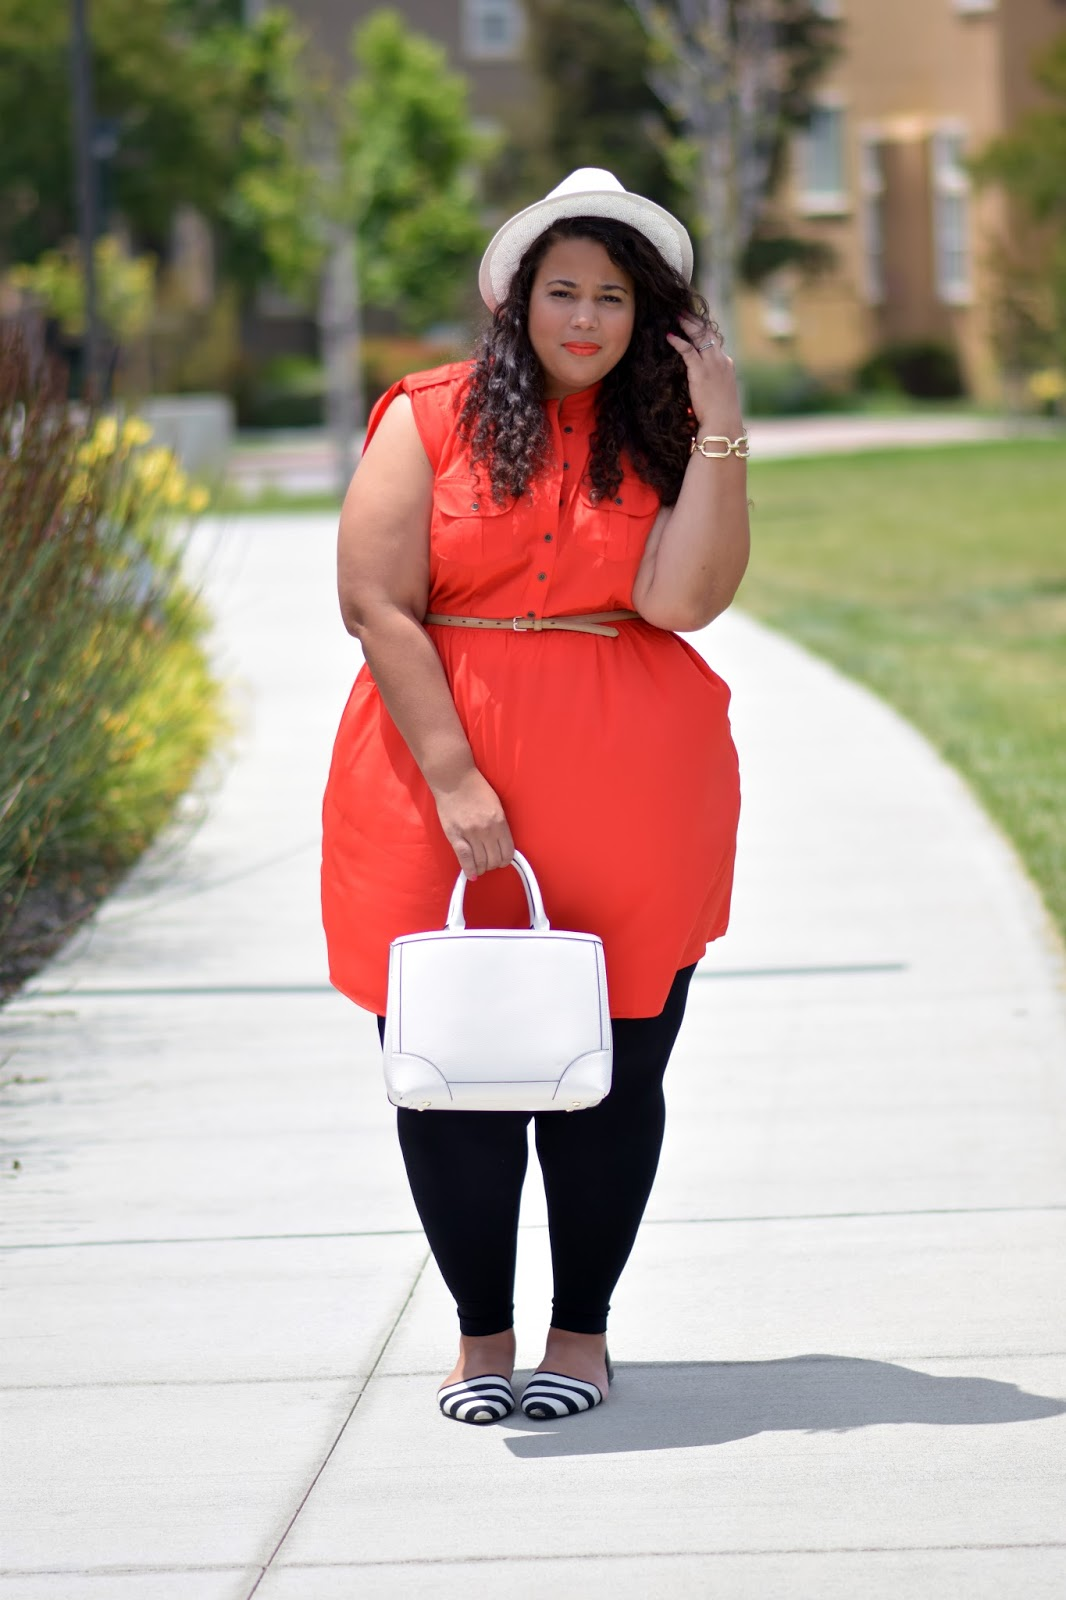 Lane Bryant has over stores nationwide specializing in quality, fashion-forward plus size clothing and lingerie especially designed to fit and flatter curvy women. Lane Bryant knows that style is not a size, it's an attitude, and each store embraces and reflects the .